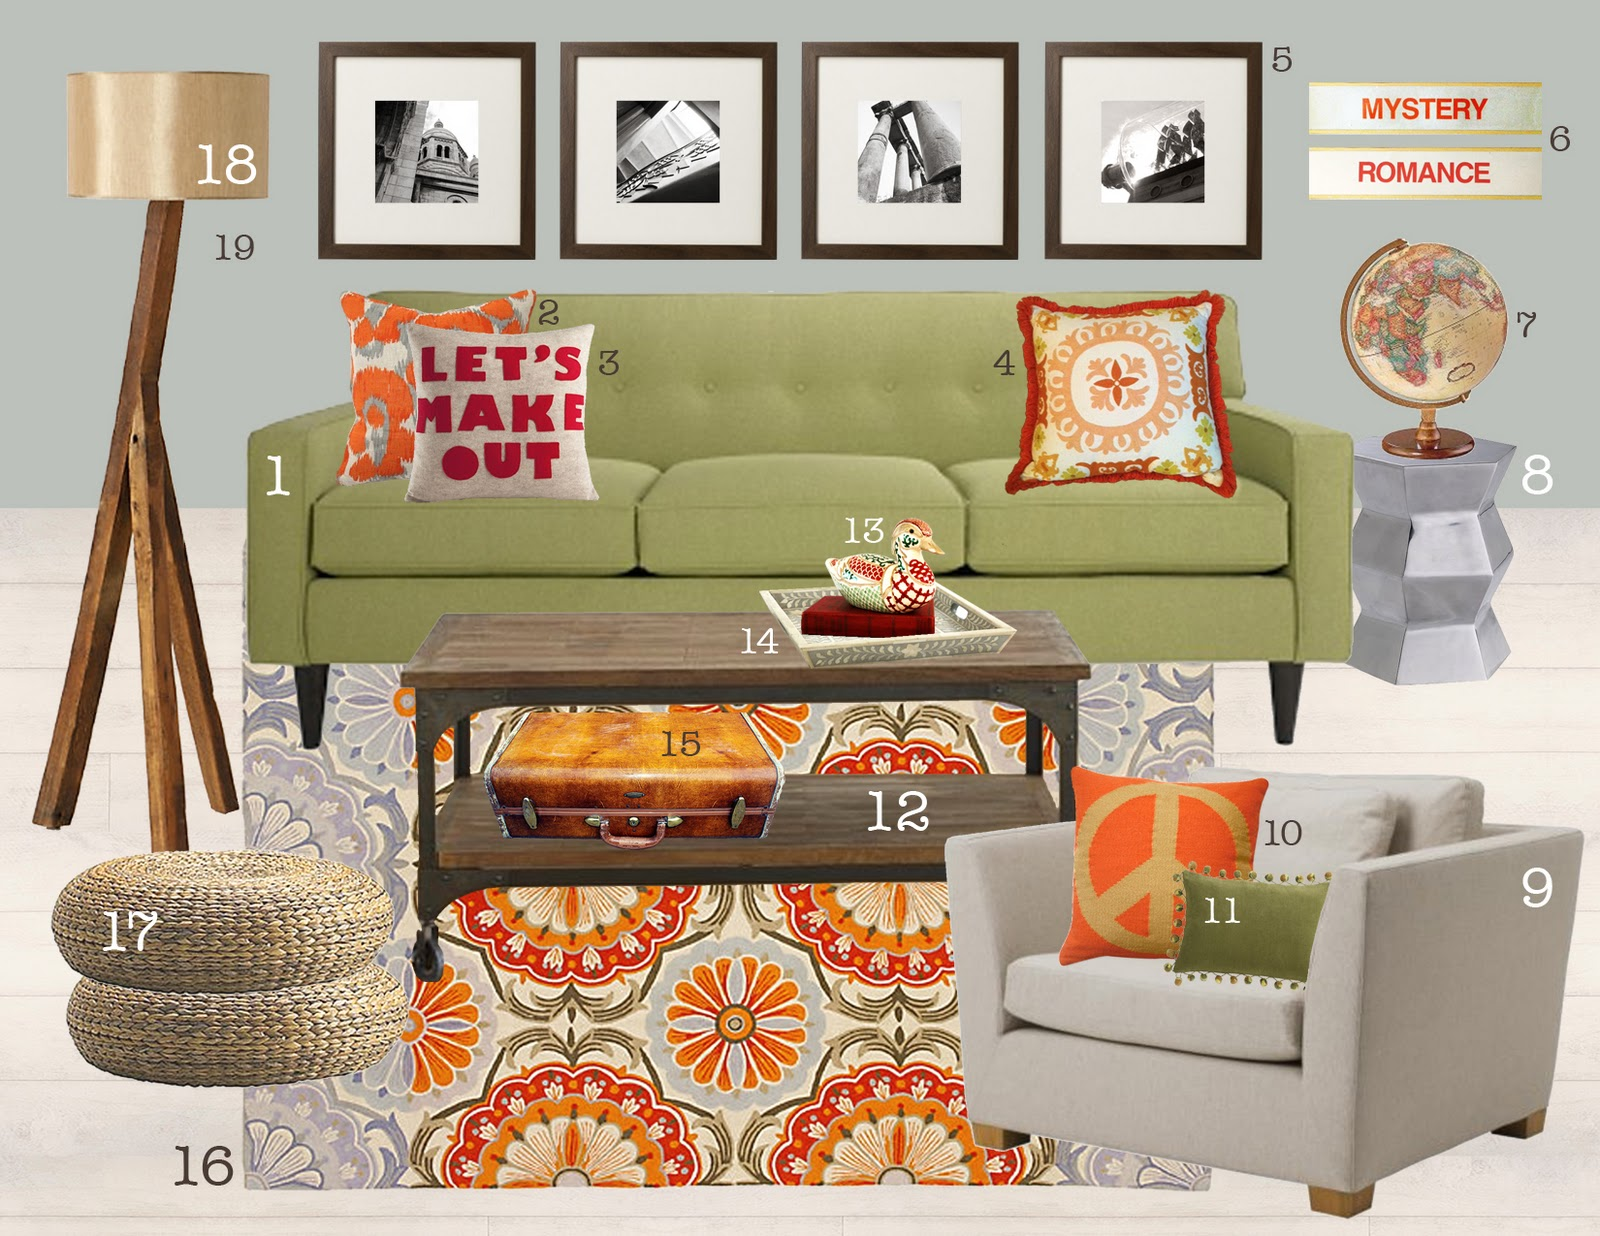 300 Sunny Days 20 items or less an autumn inspired living room